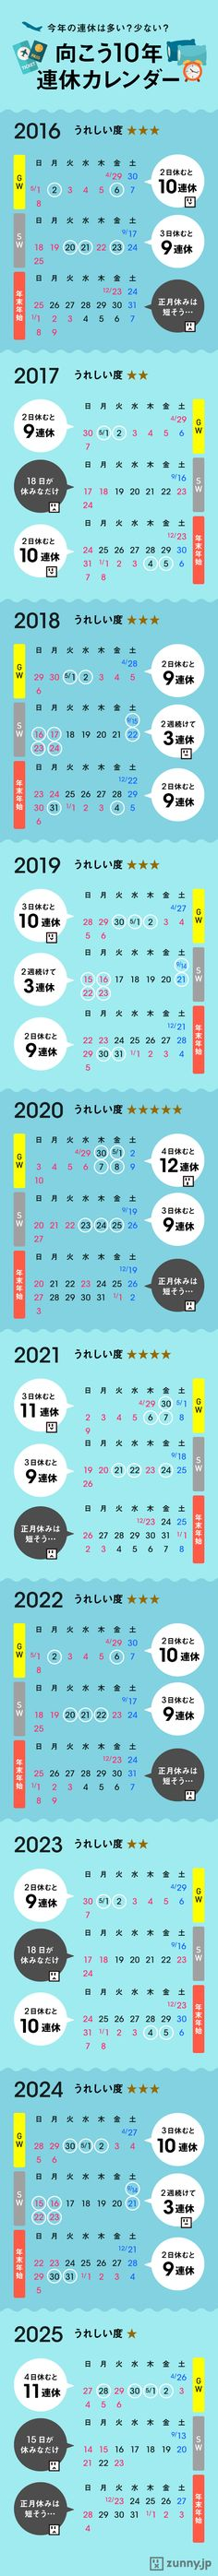 I have no idea of what this infografica is about, but I'm love with Japanese things